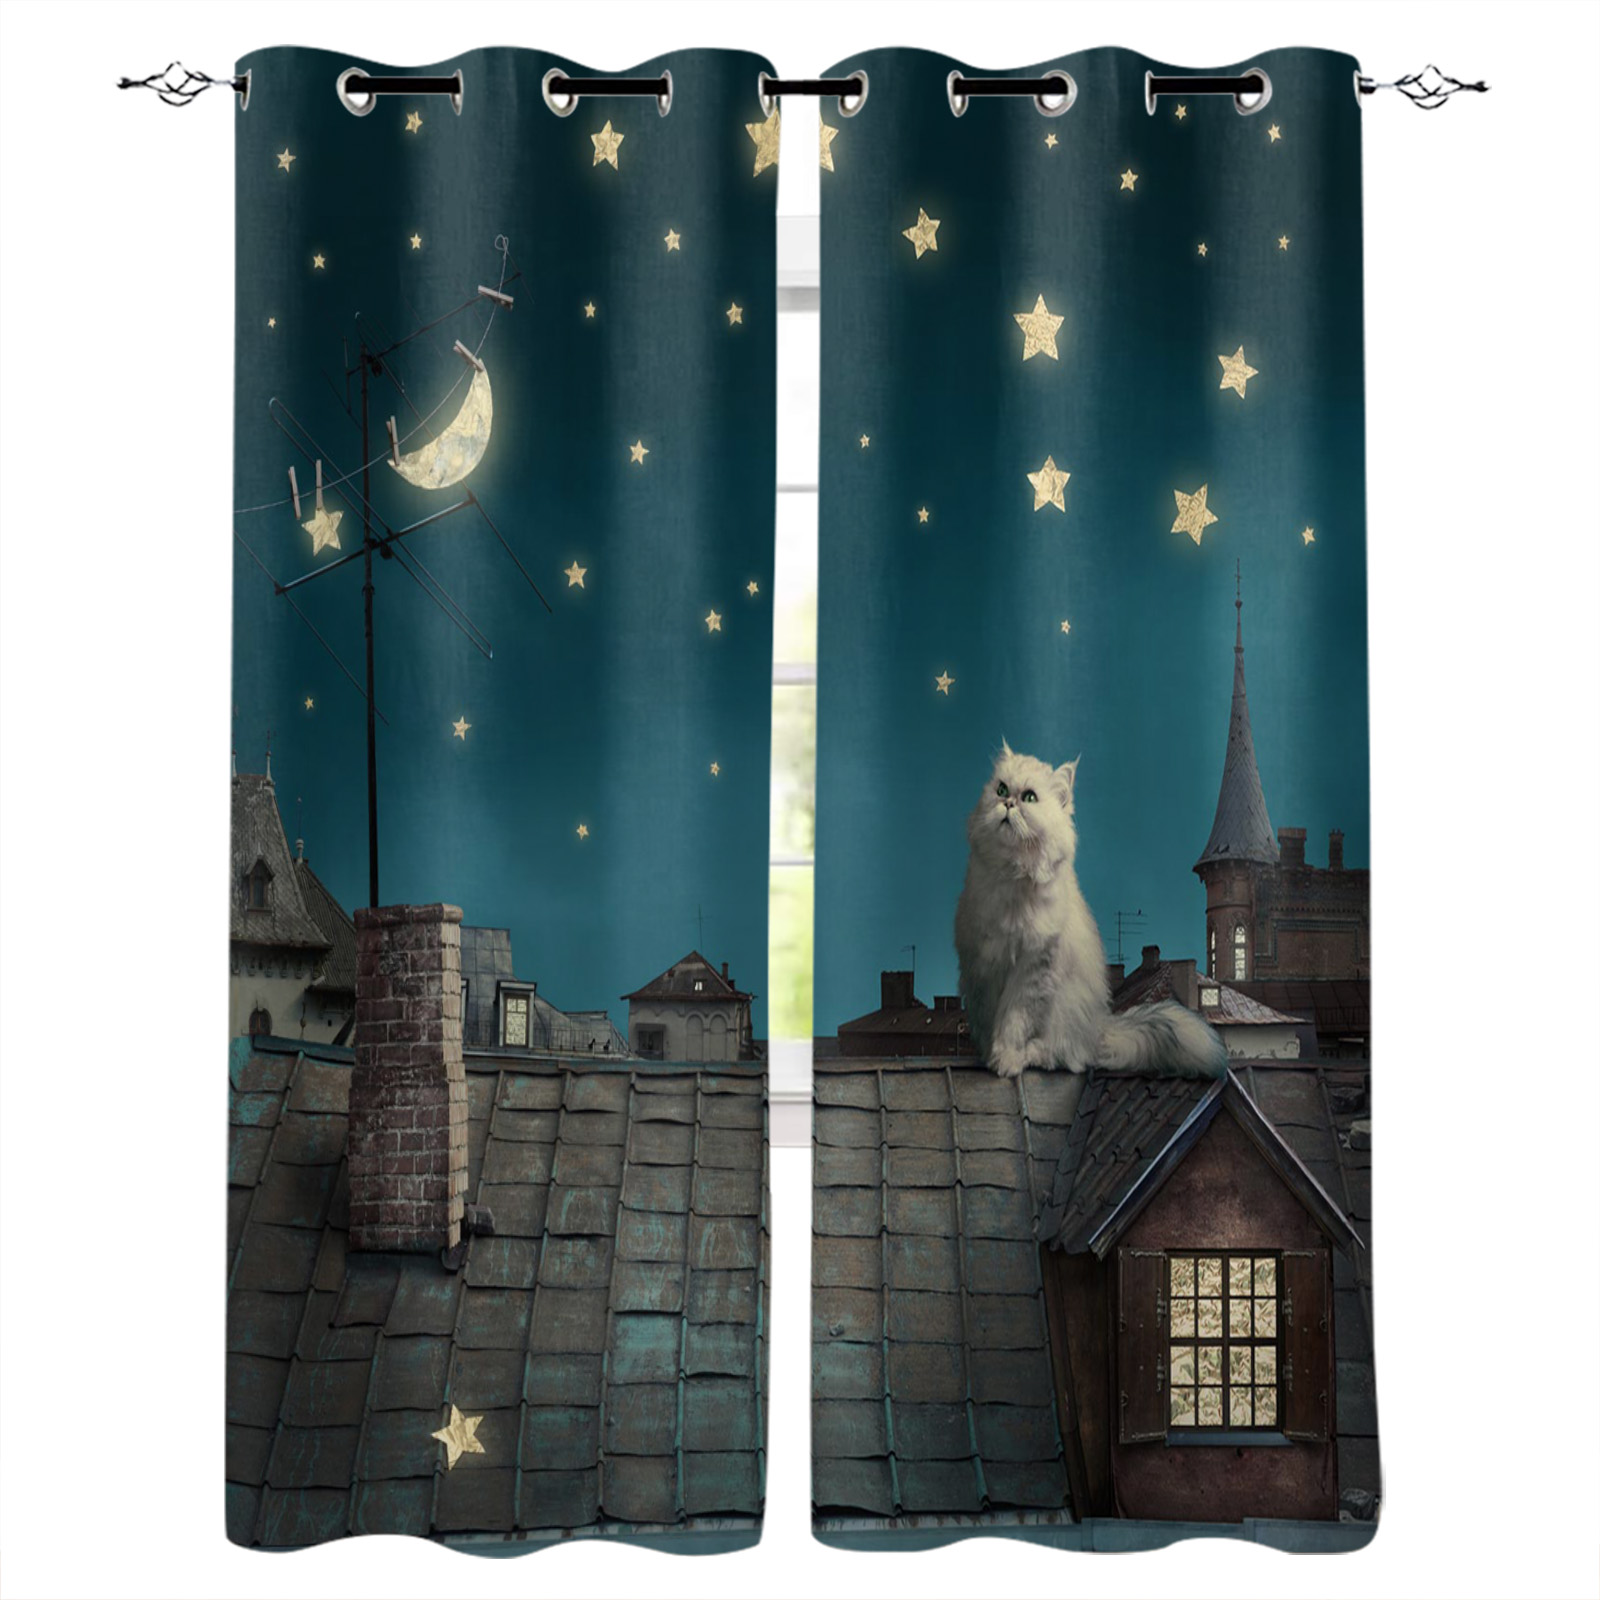 Buy Curtains   Great Deals On Curtains With Free Shipping FC12 ...